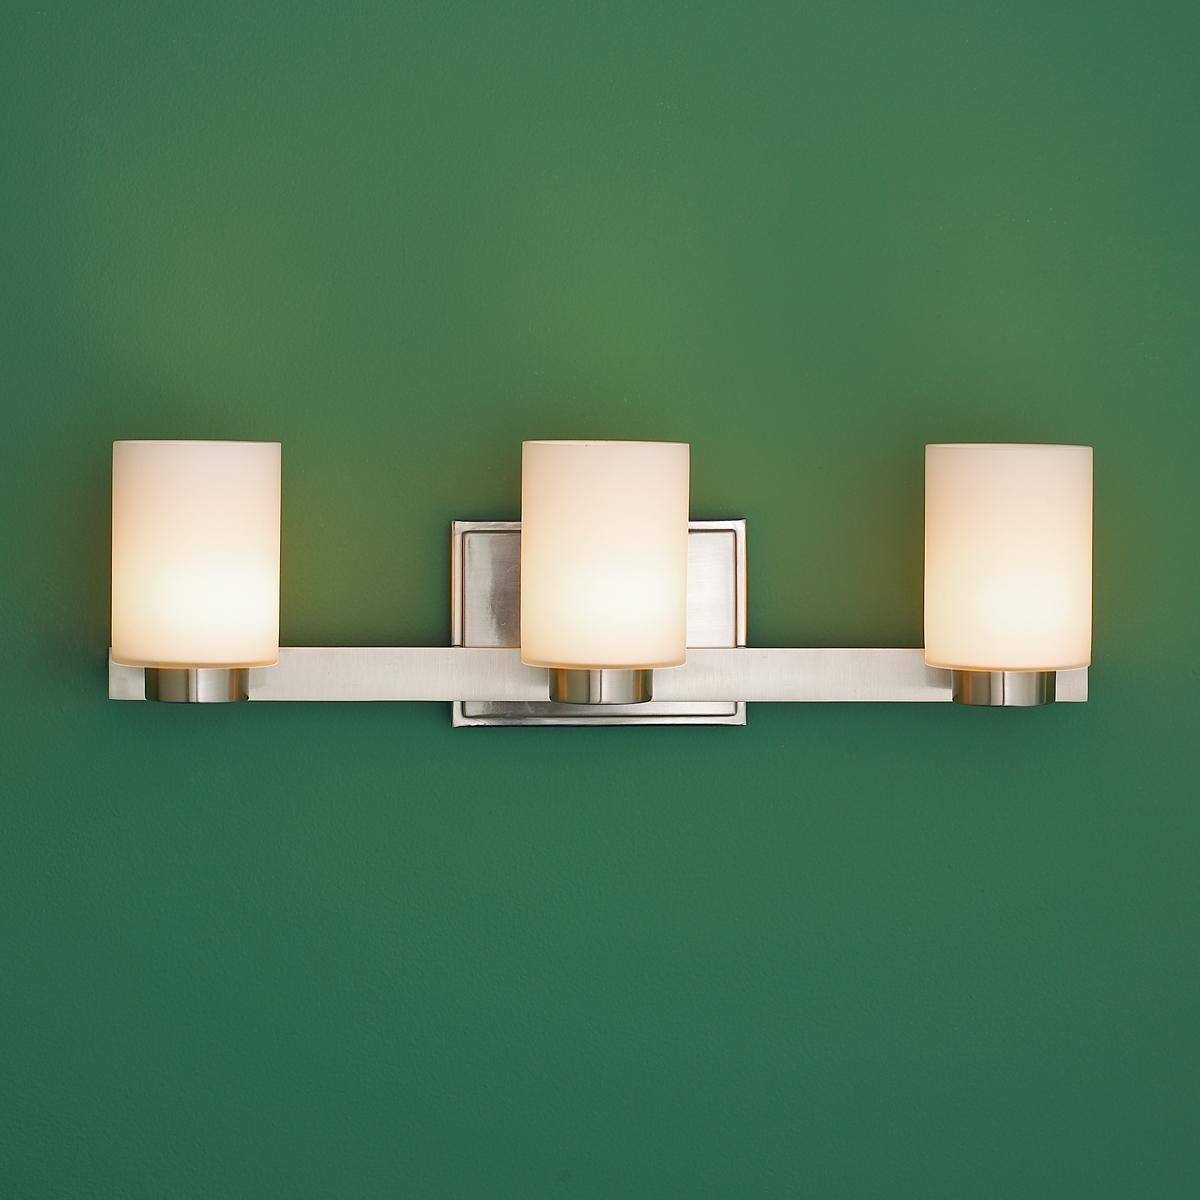 Contempo Loft Bath Light - 3 Light | Bath light, Lofts and Bath